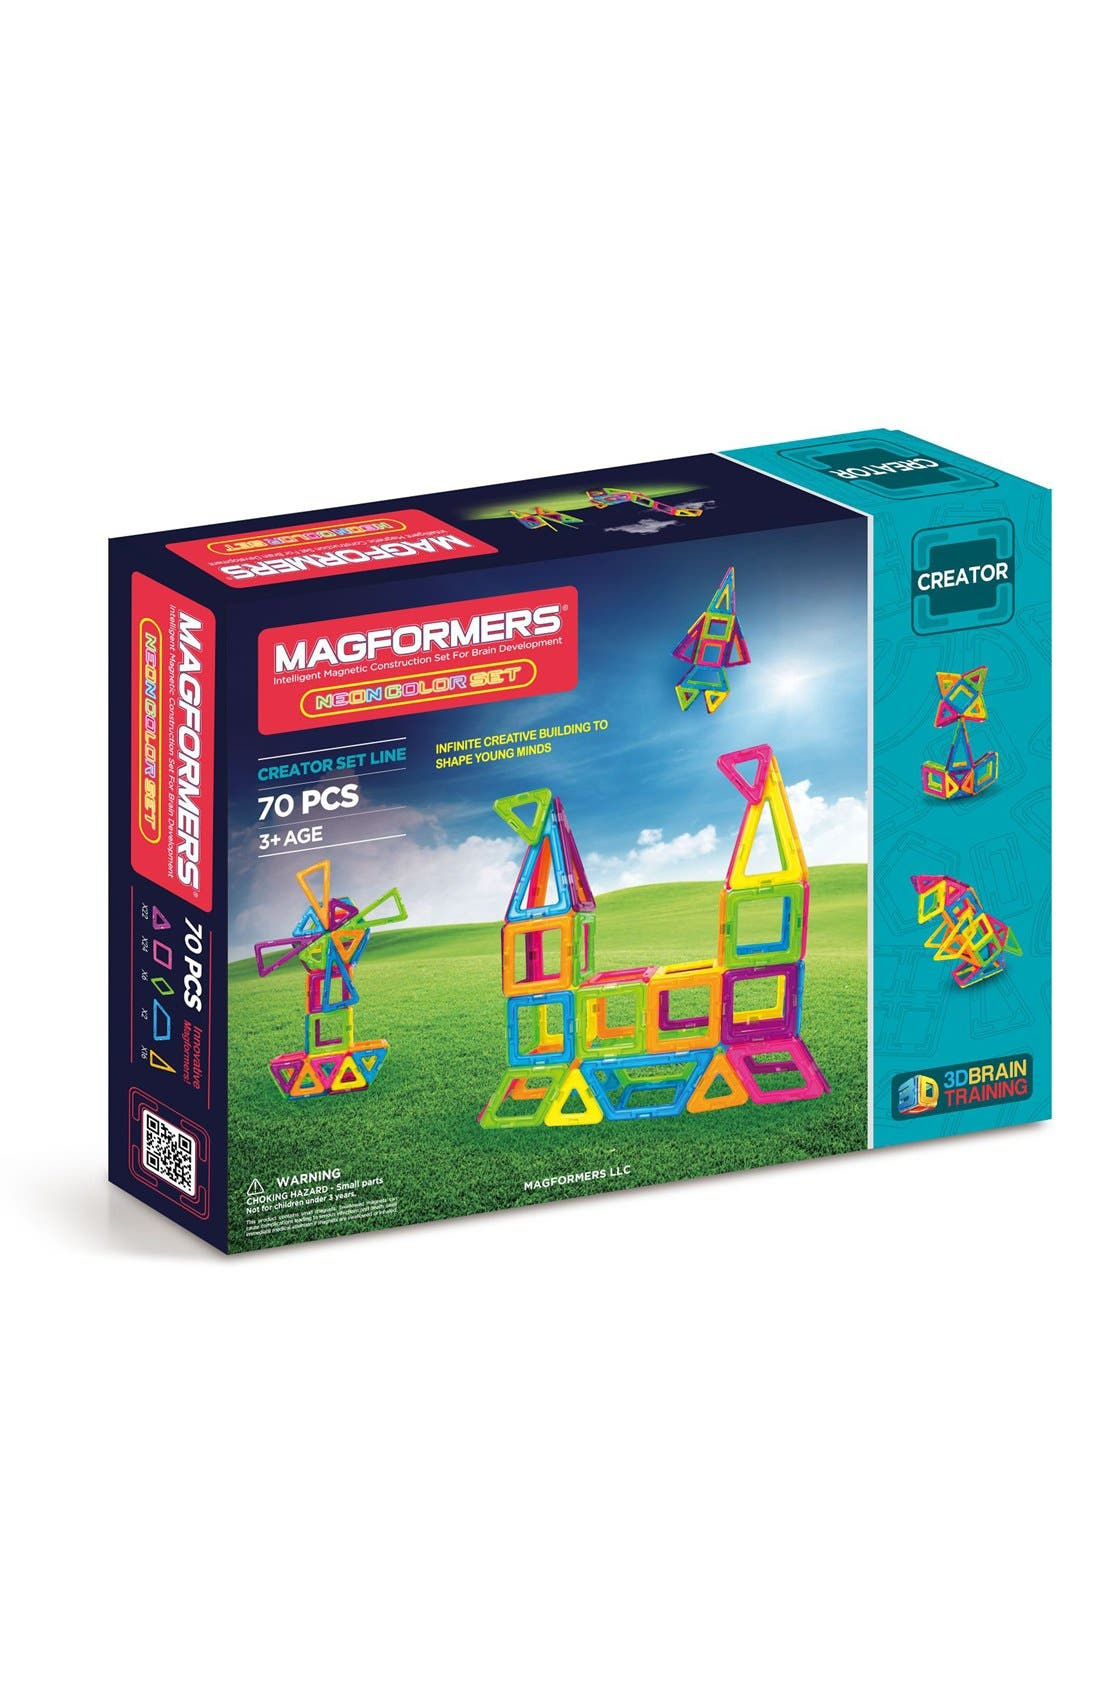 Alternate Image 1 Selected - Magformers 'Creator' Neon Magnetic 3D Construction Set